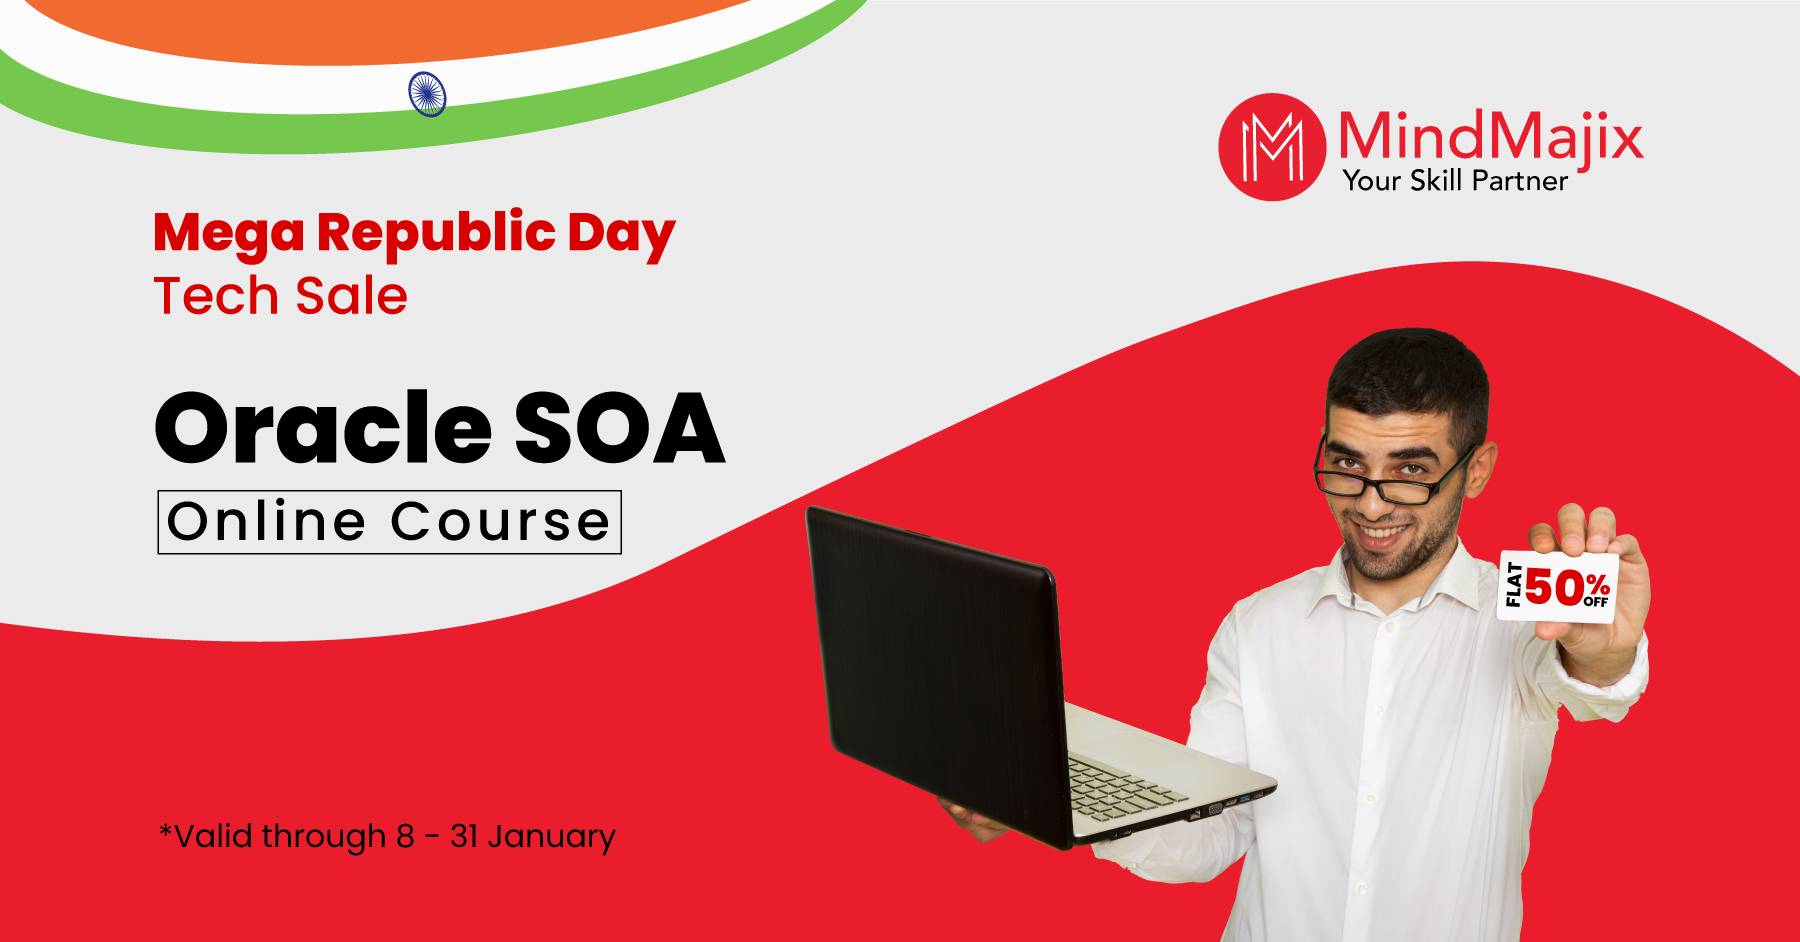 Oracle SOA Mega Republic Day Tech Sale Offer